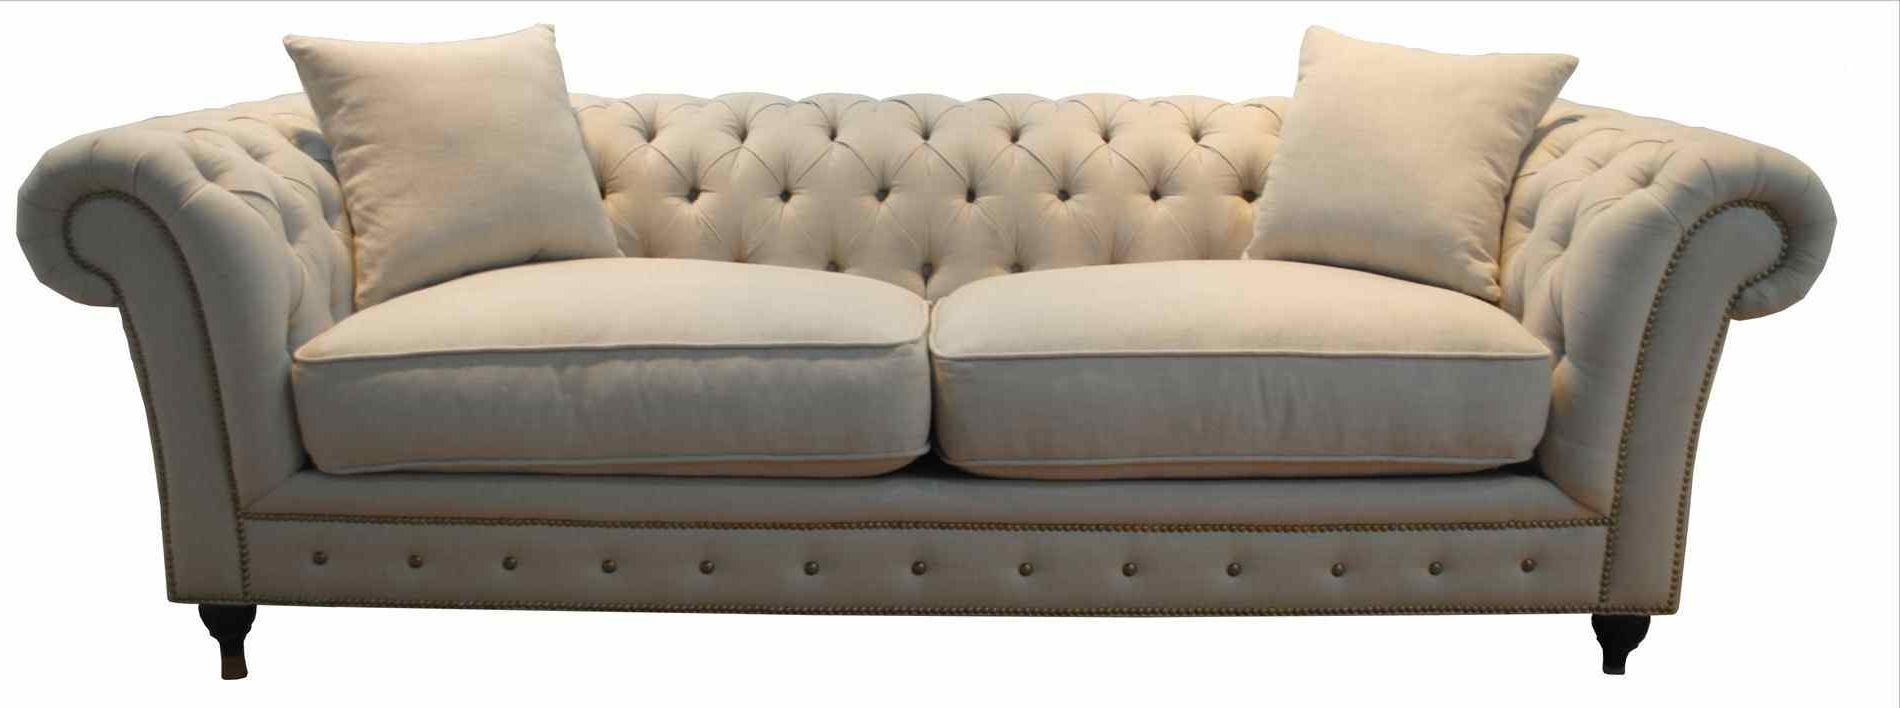 Sofa : Room French Sofa Set Furniture Style Various Fabric Color Pertaining To Best And Newest French Style Sofas (View 17 of 20)